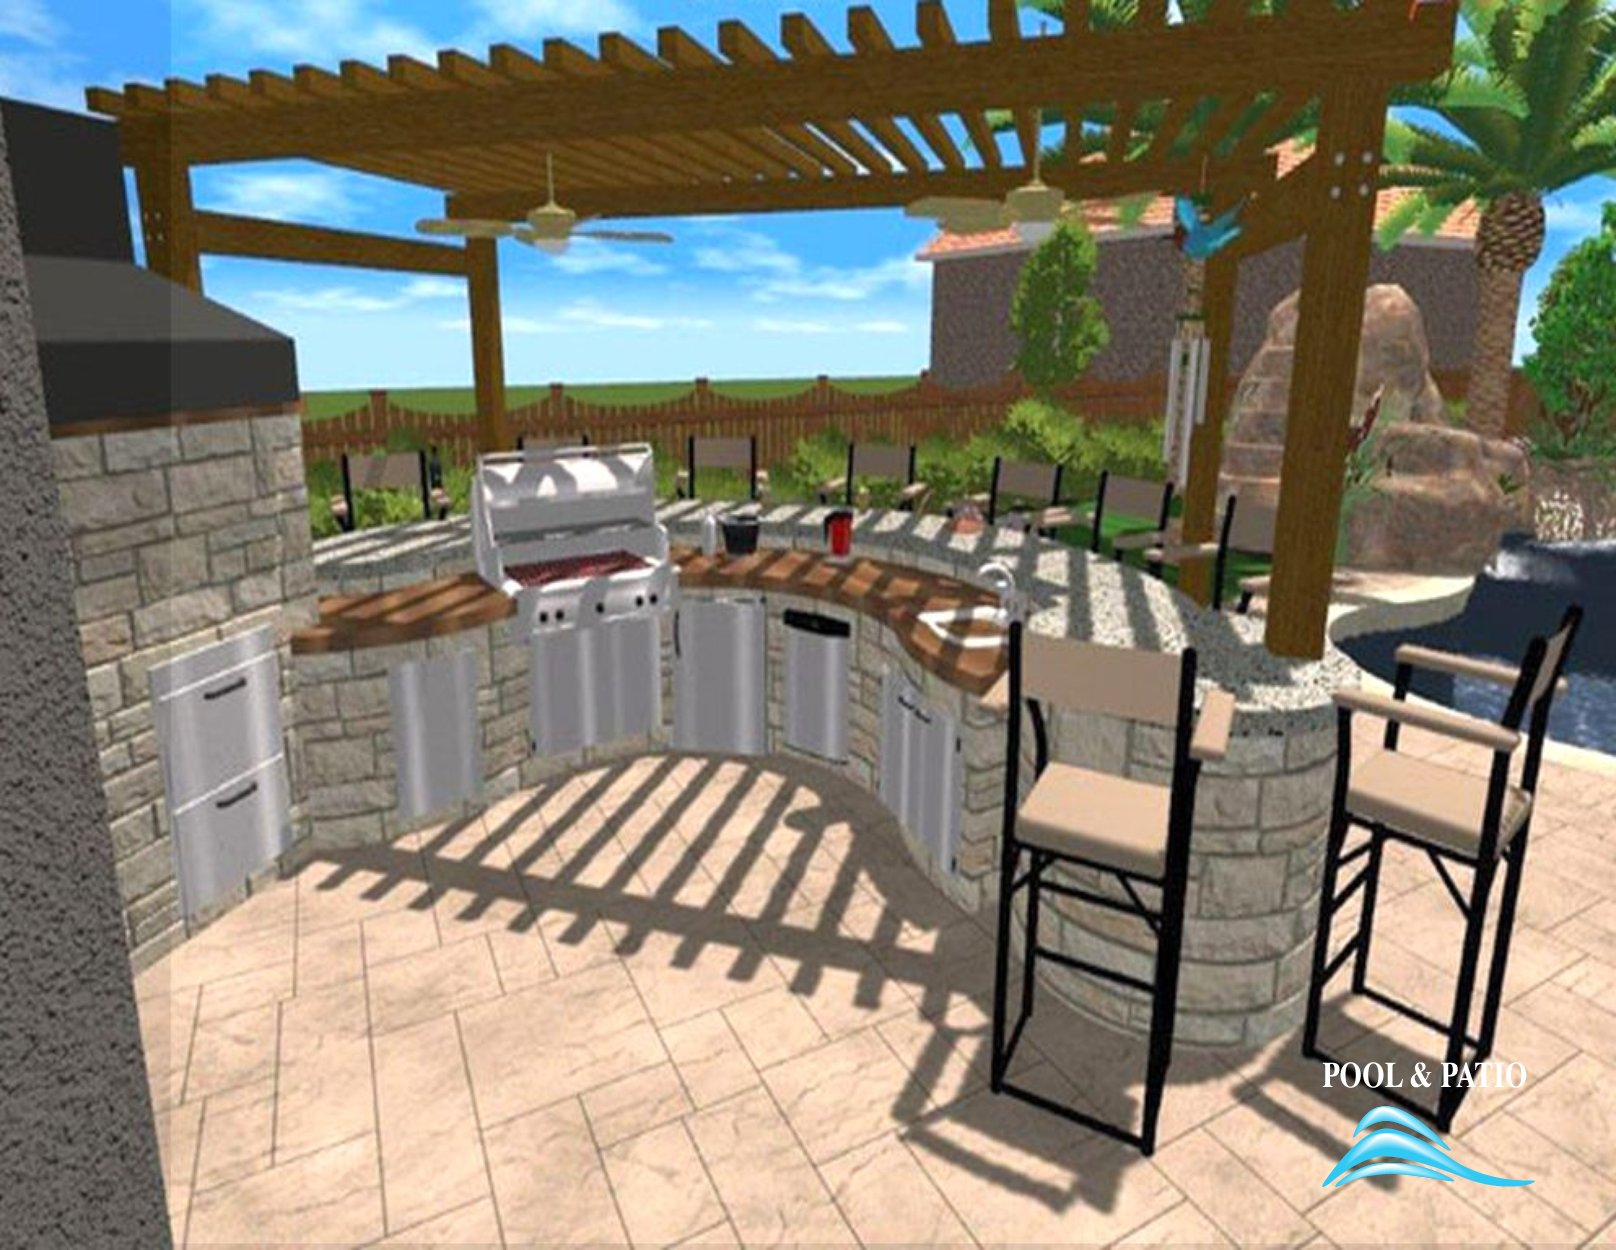 ... Design Service #002 By Pool And Patio ...